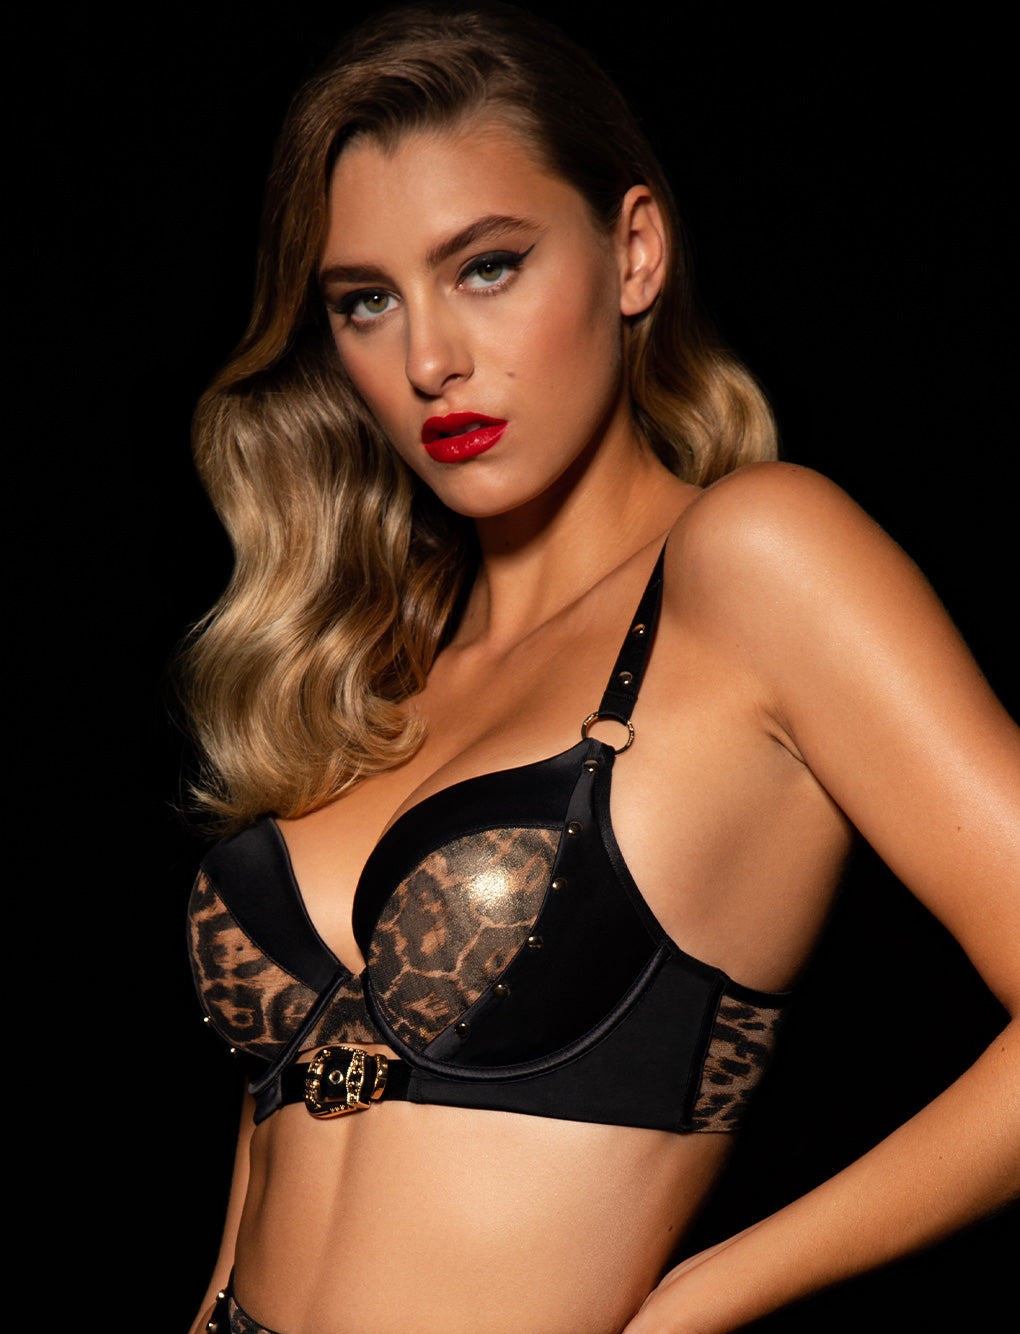 Briony Push Up Bra